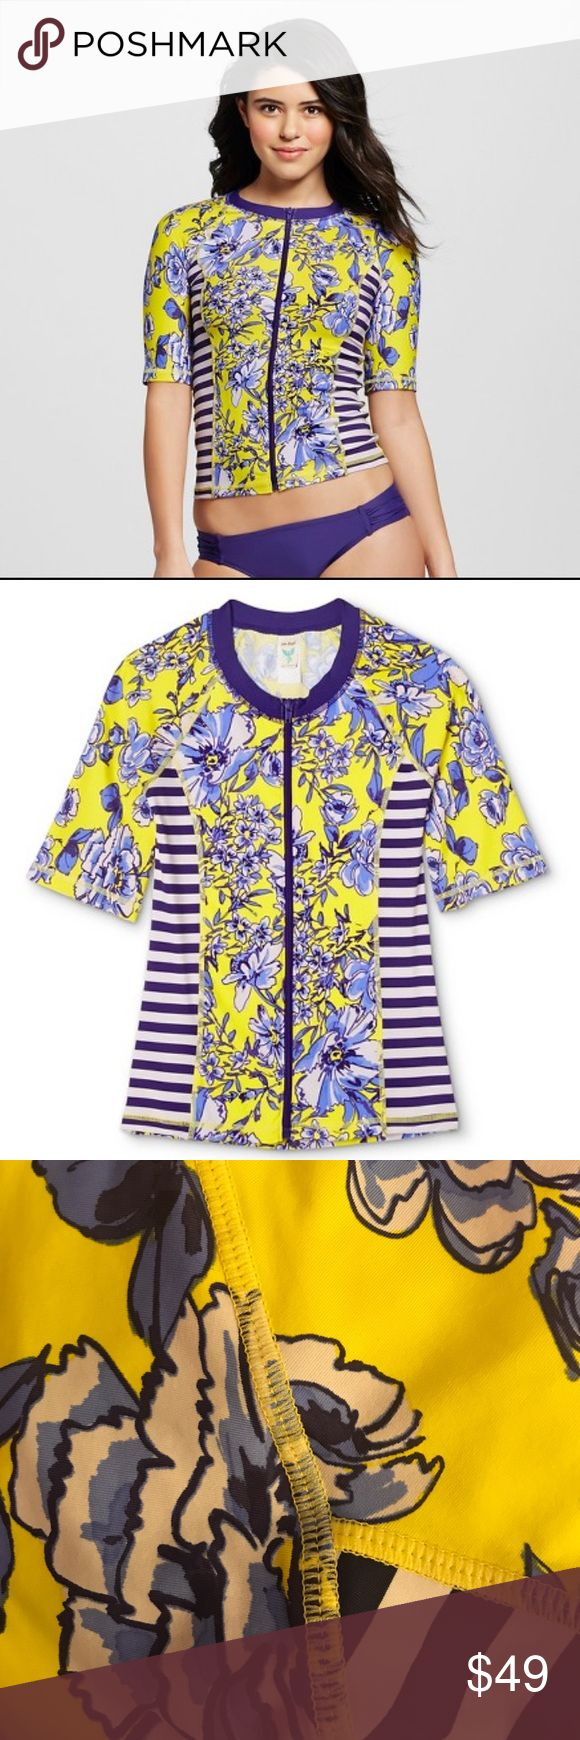 New! Swim Zip-Up Beach Top! 💕 New! Swim material. Blue. Yellow. Zipper. 10/10 Condition no rips or tears. Perfect Condition, quality fabric. Soft & Stretchy. Accentuates your figure. Makes even an A cup look amazing & up to a small 32D! Chest flattering ;) zip up for family outings or zip Lower for a Flirty Beach Girl Vibe 💕 Serious Offers only!❤️ Anthropologie Swim